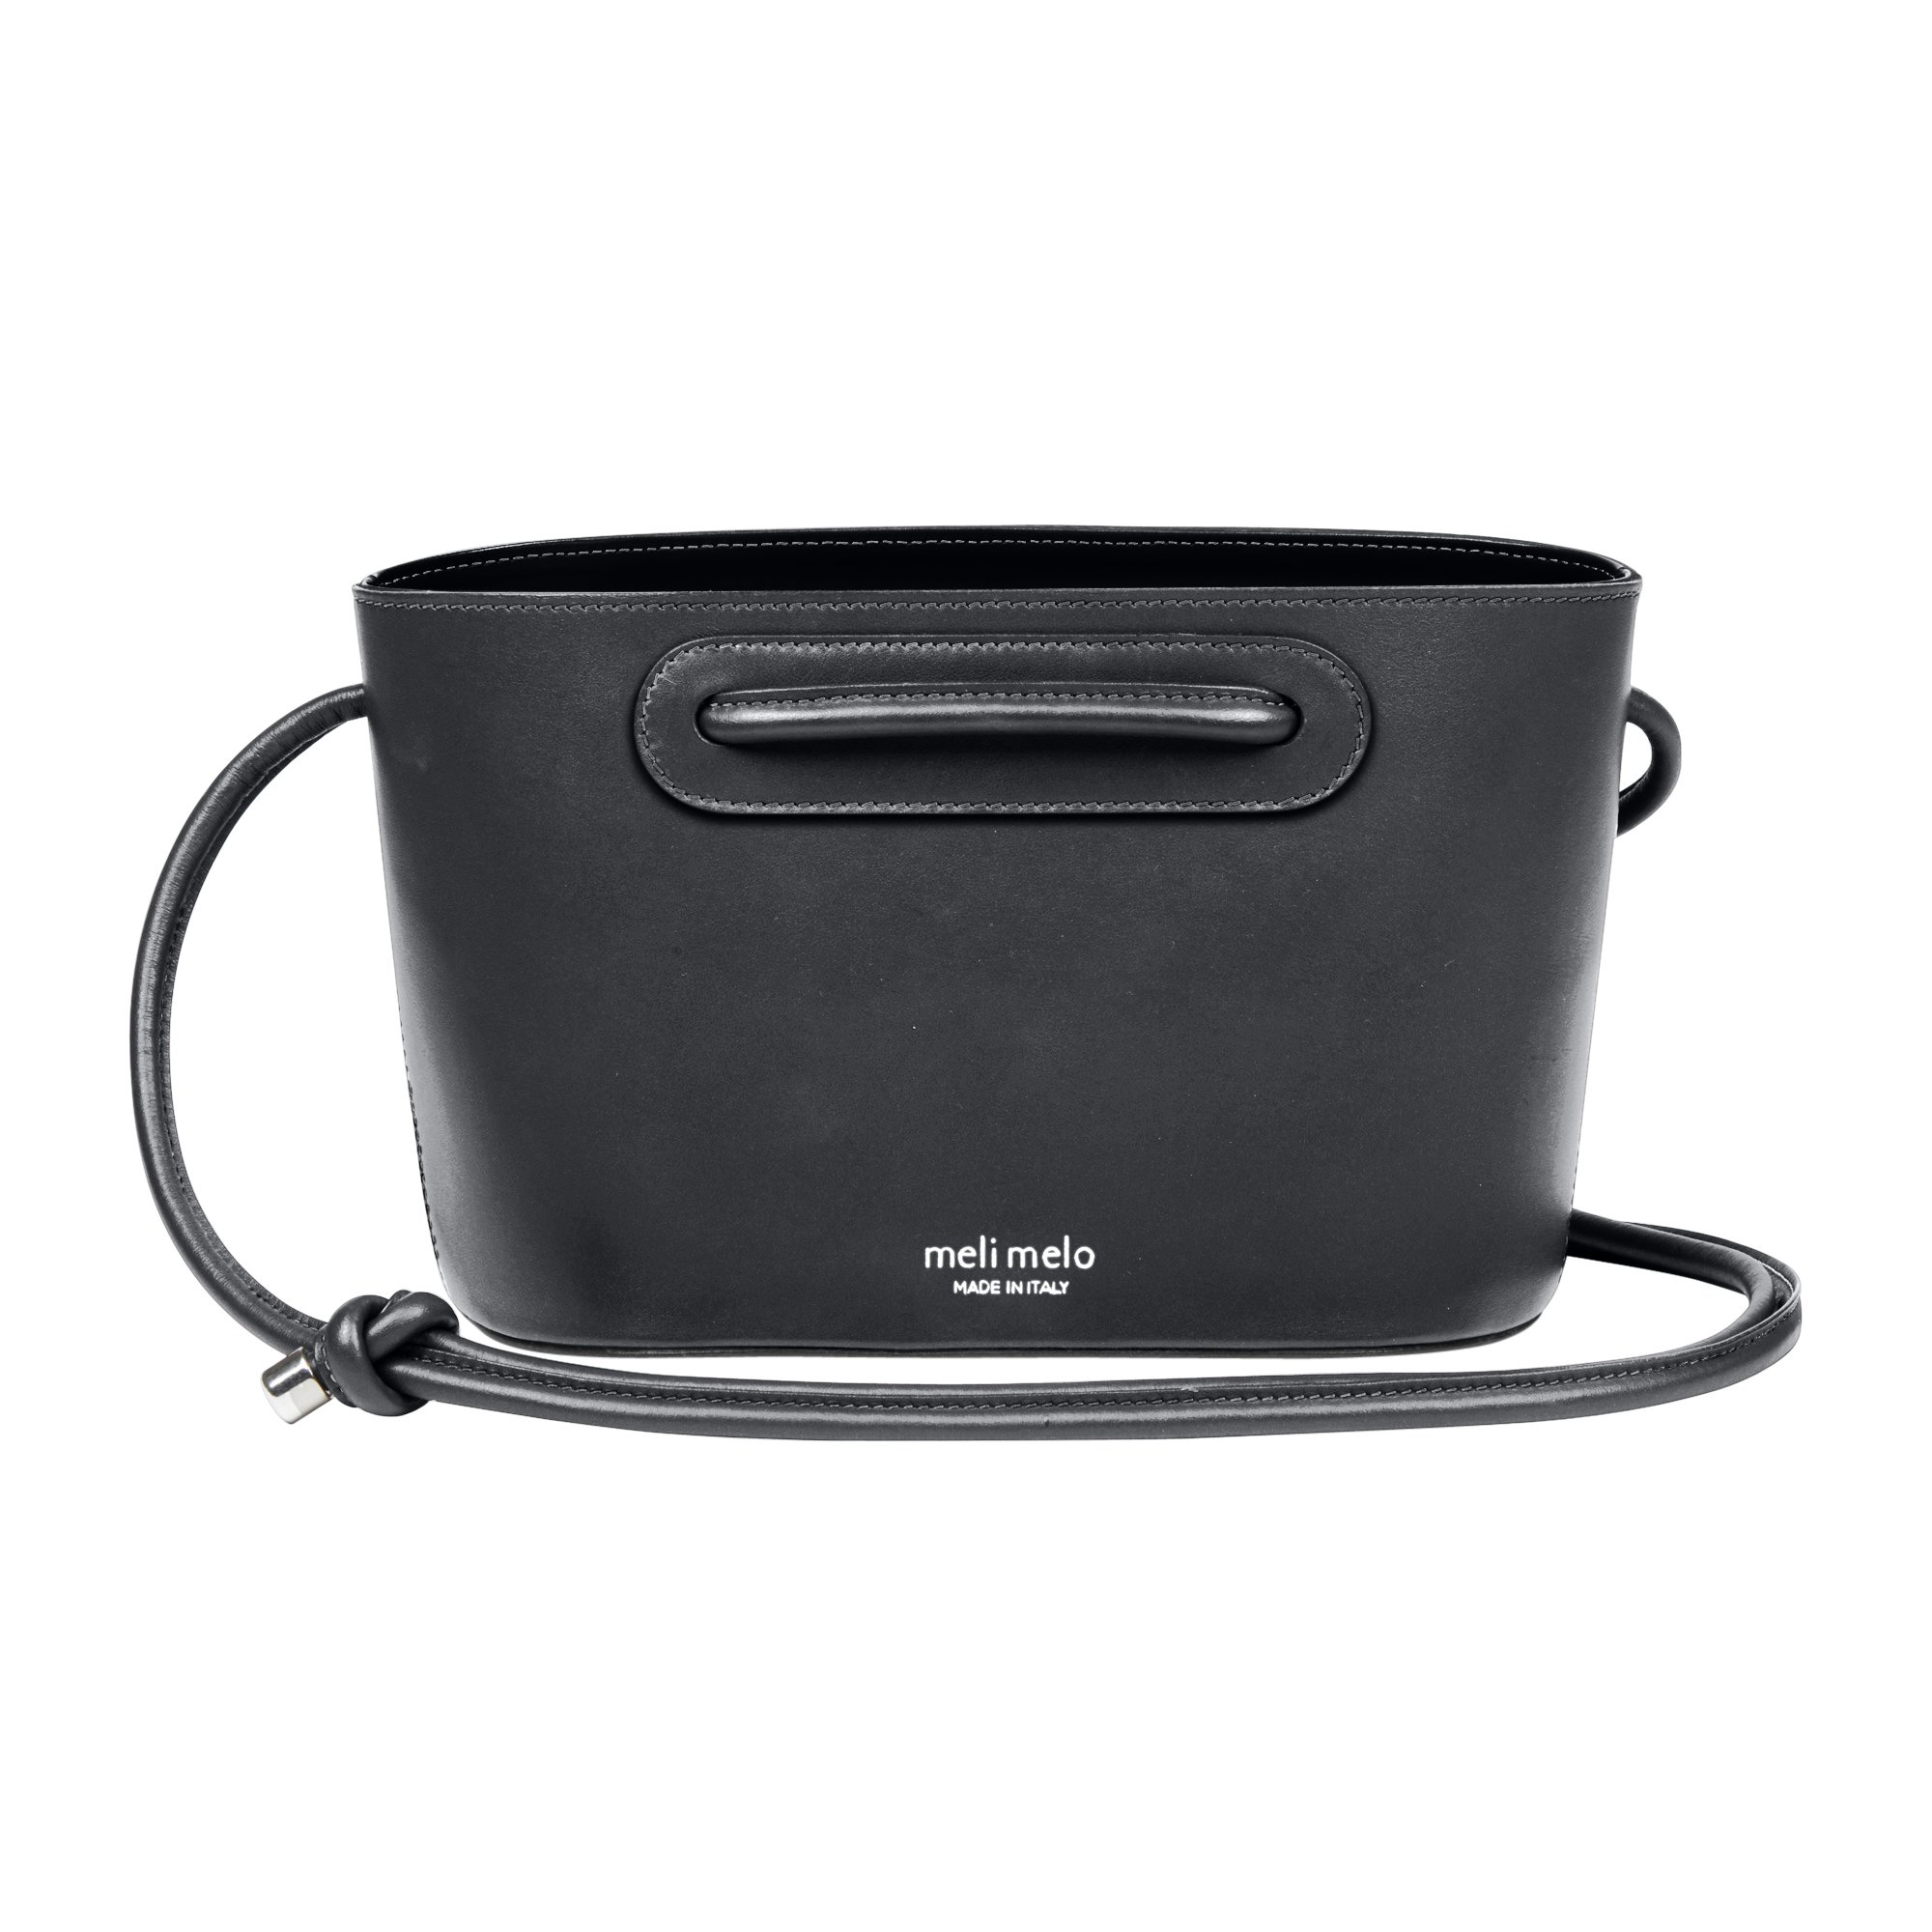 b48b97798f Meli Melo Elsie Cross Body Bag Black